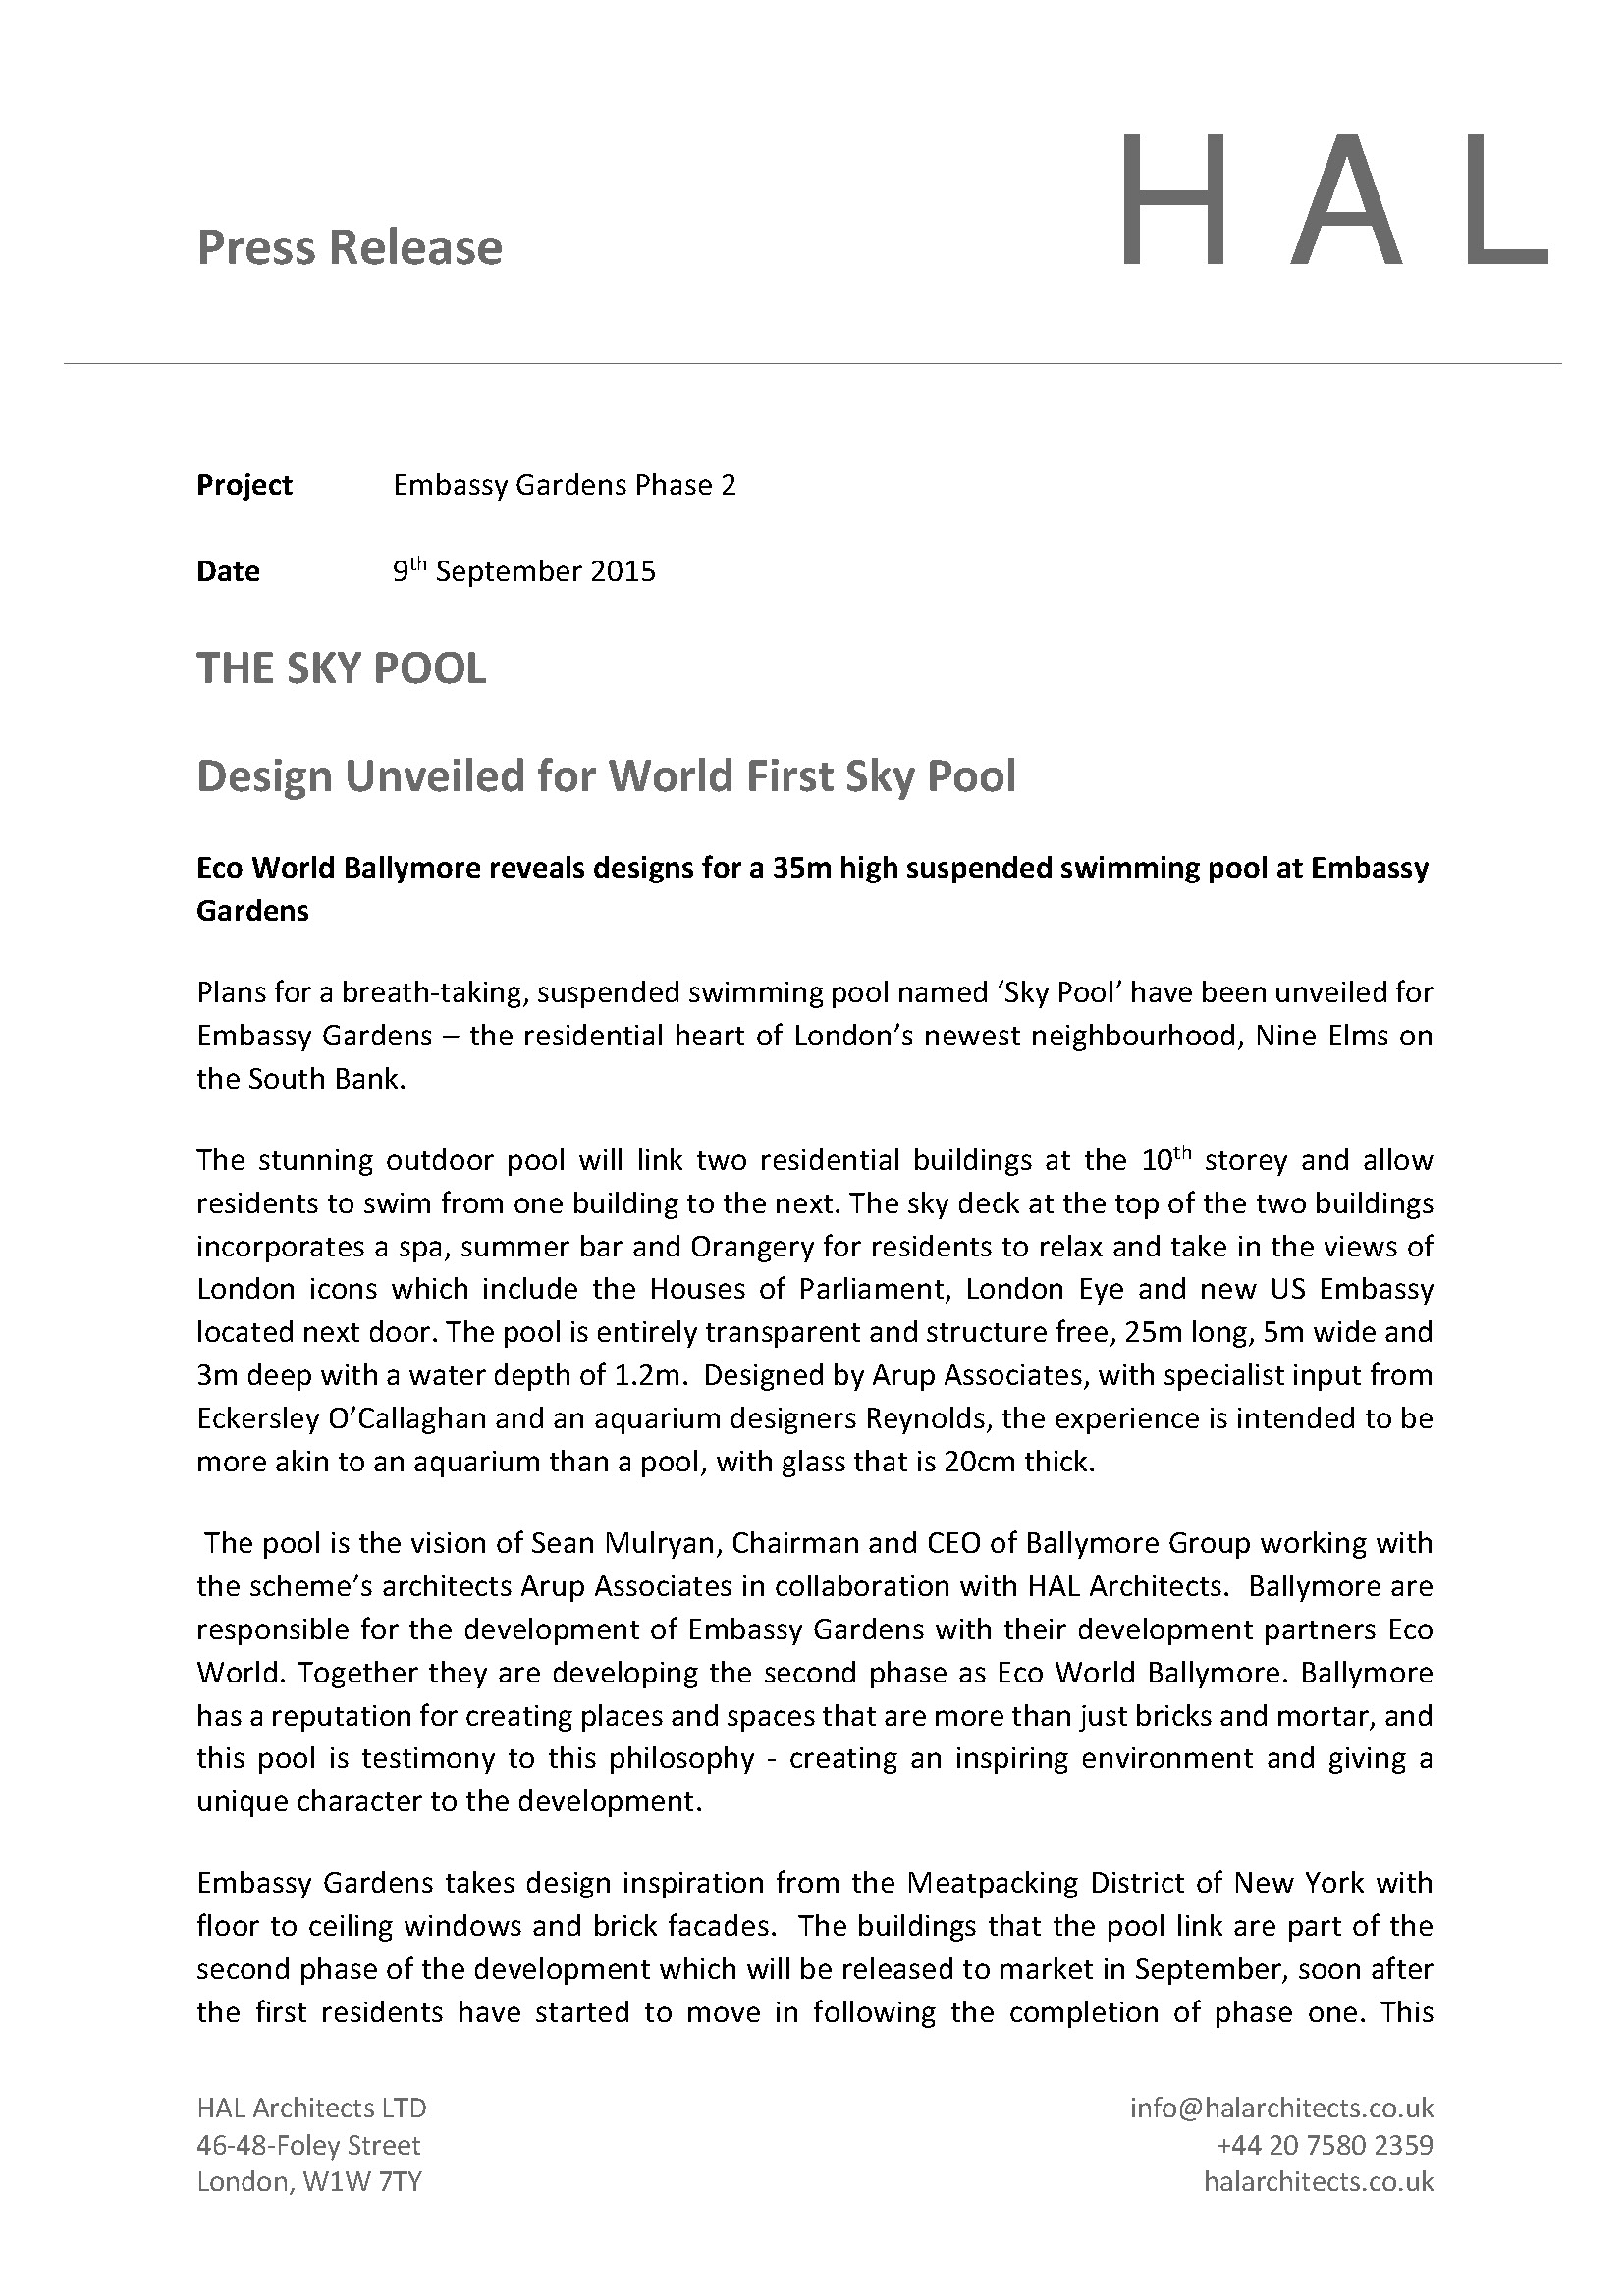 Sky Pool Press Release Page 1